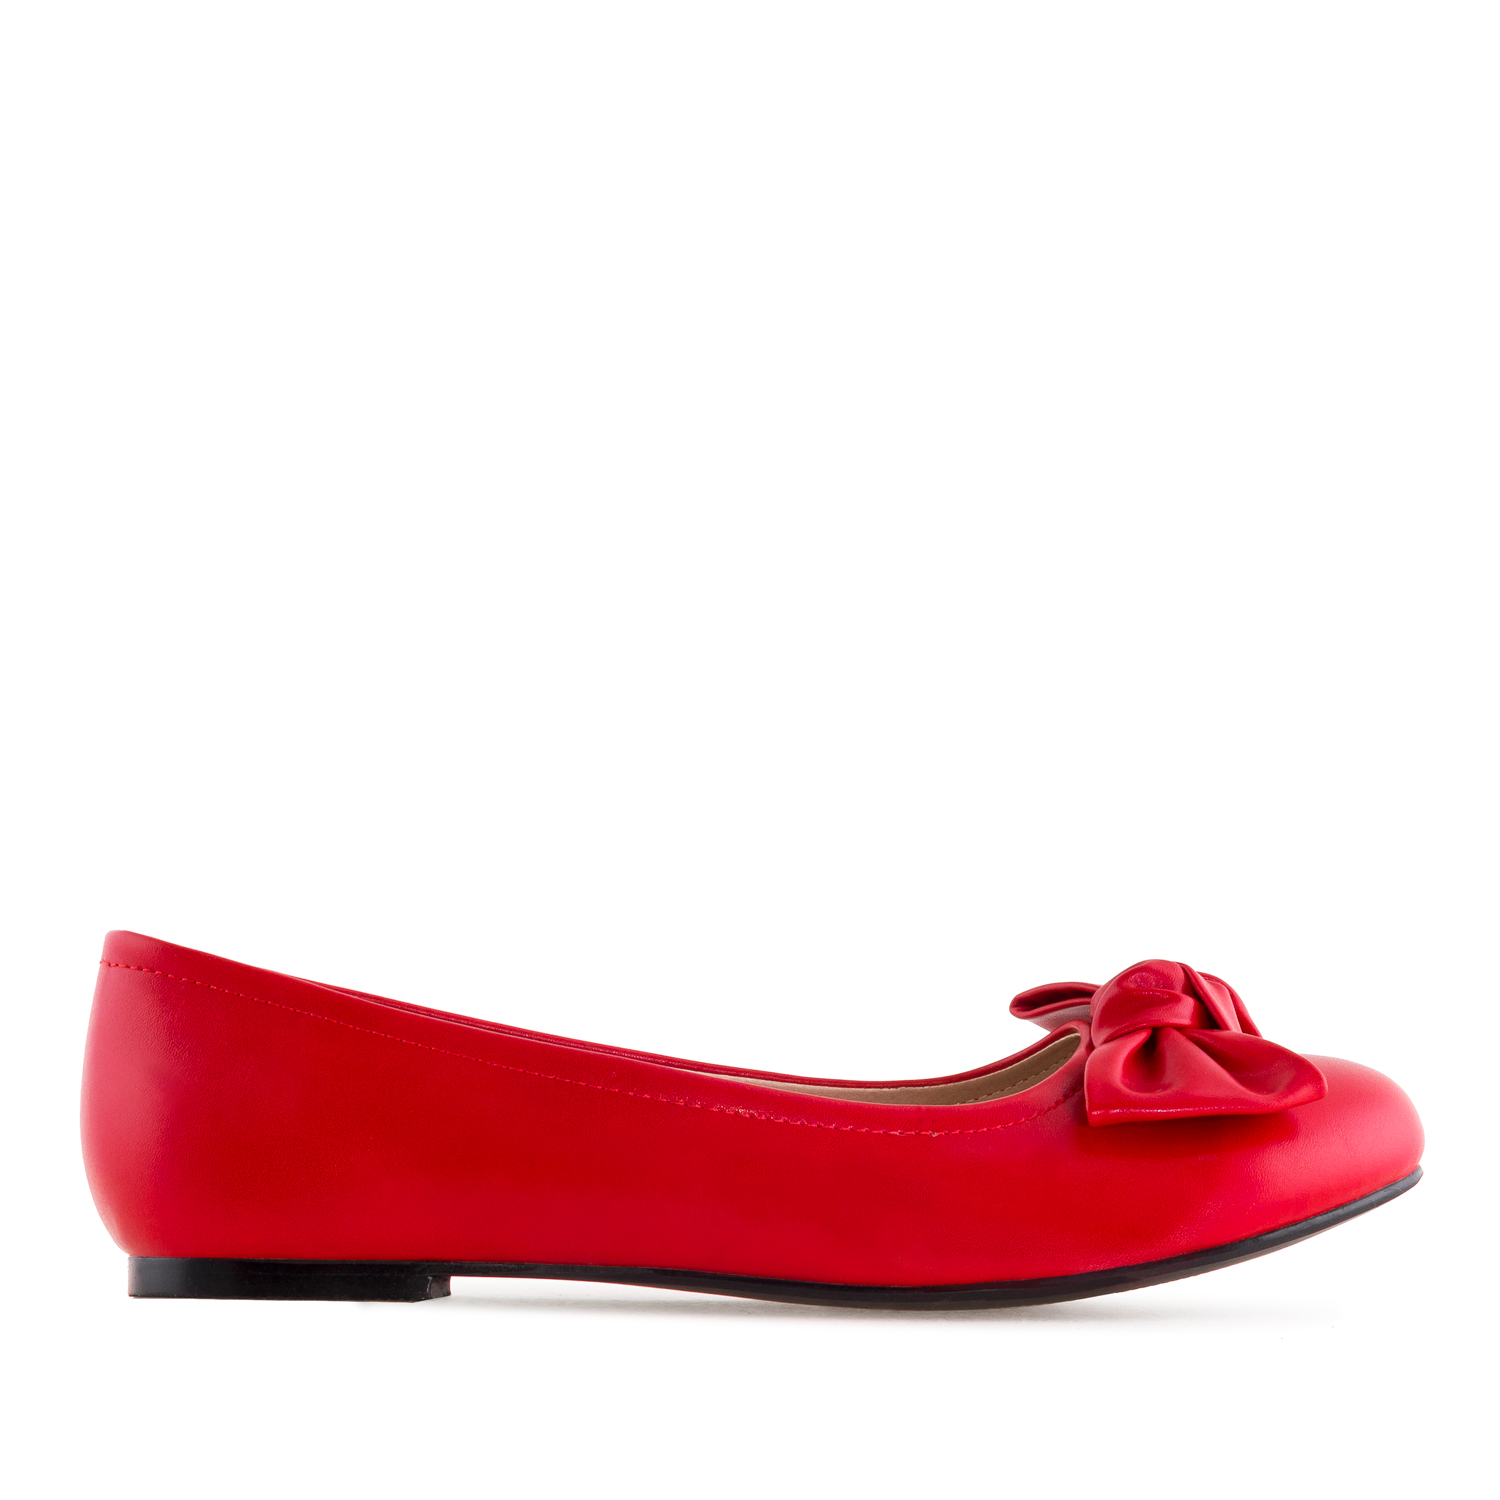 Bow Ballet Flats in Red faux Leather